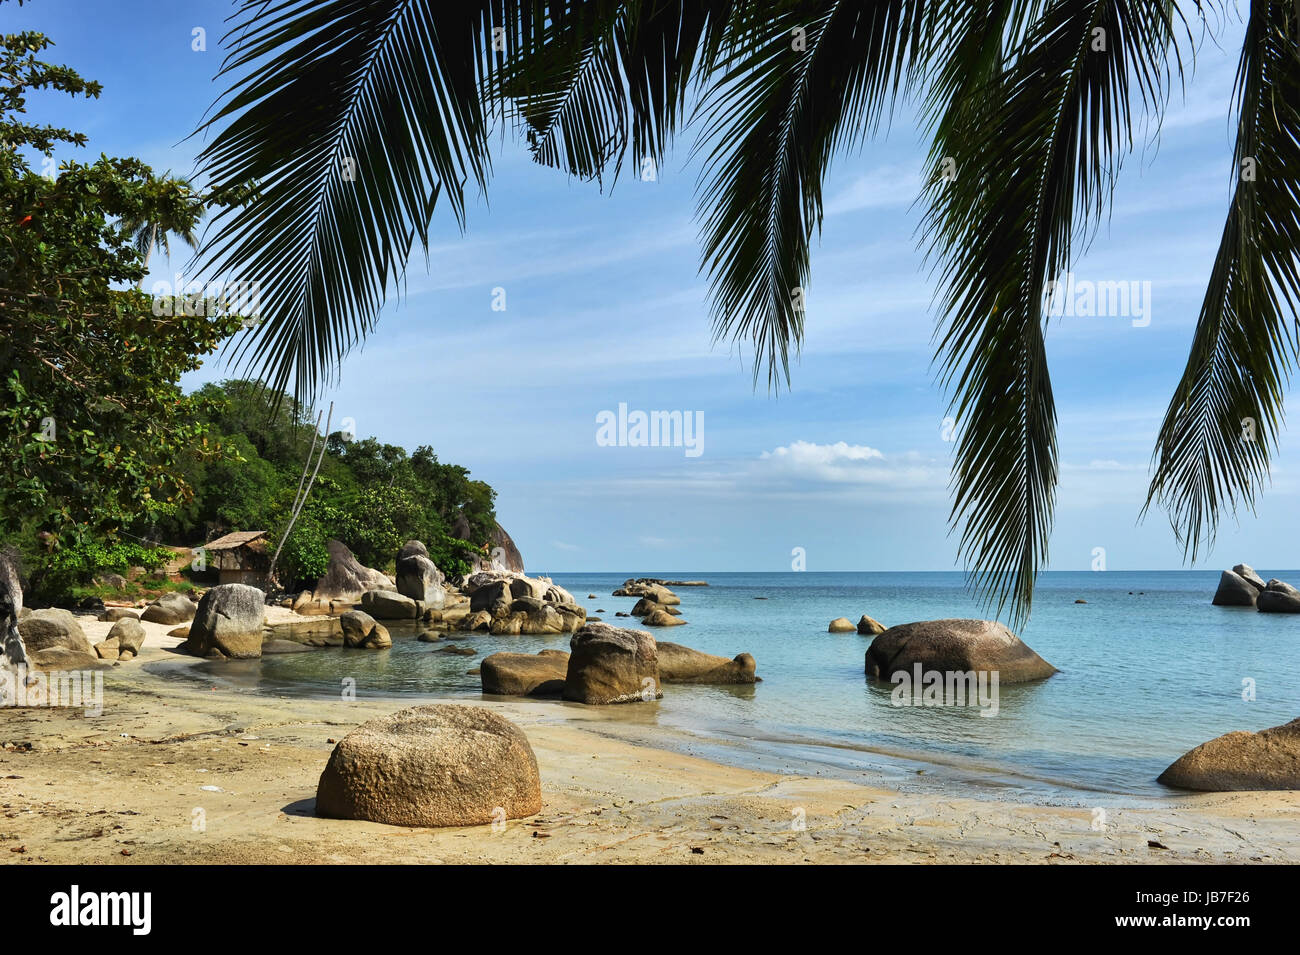 Lamai beach with turquoise water and blue sky - Stock Image